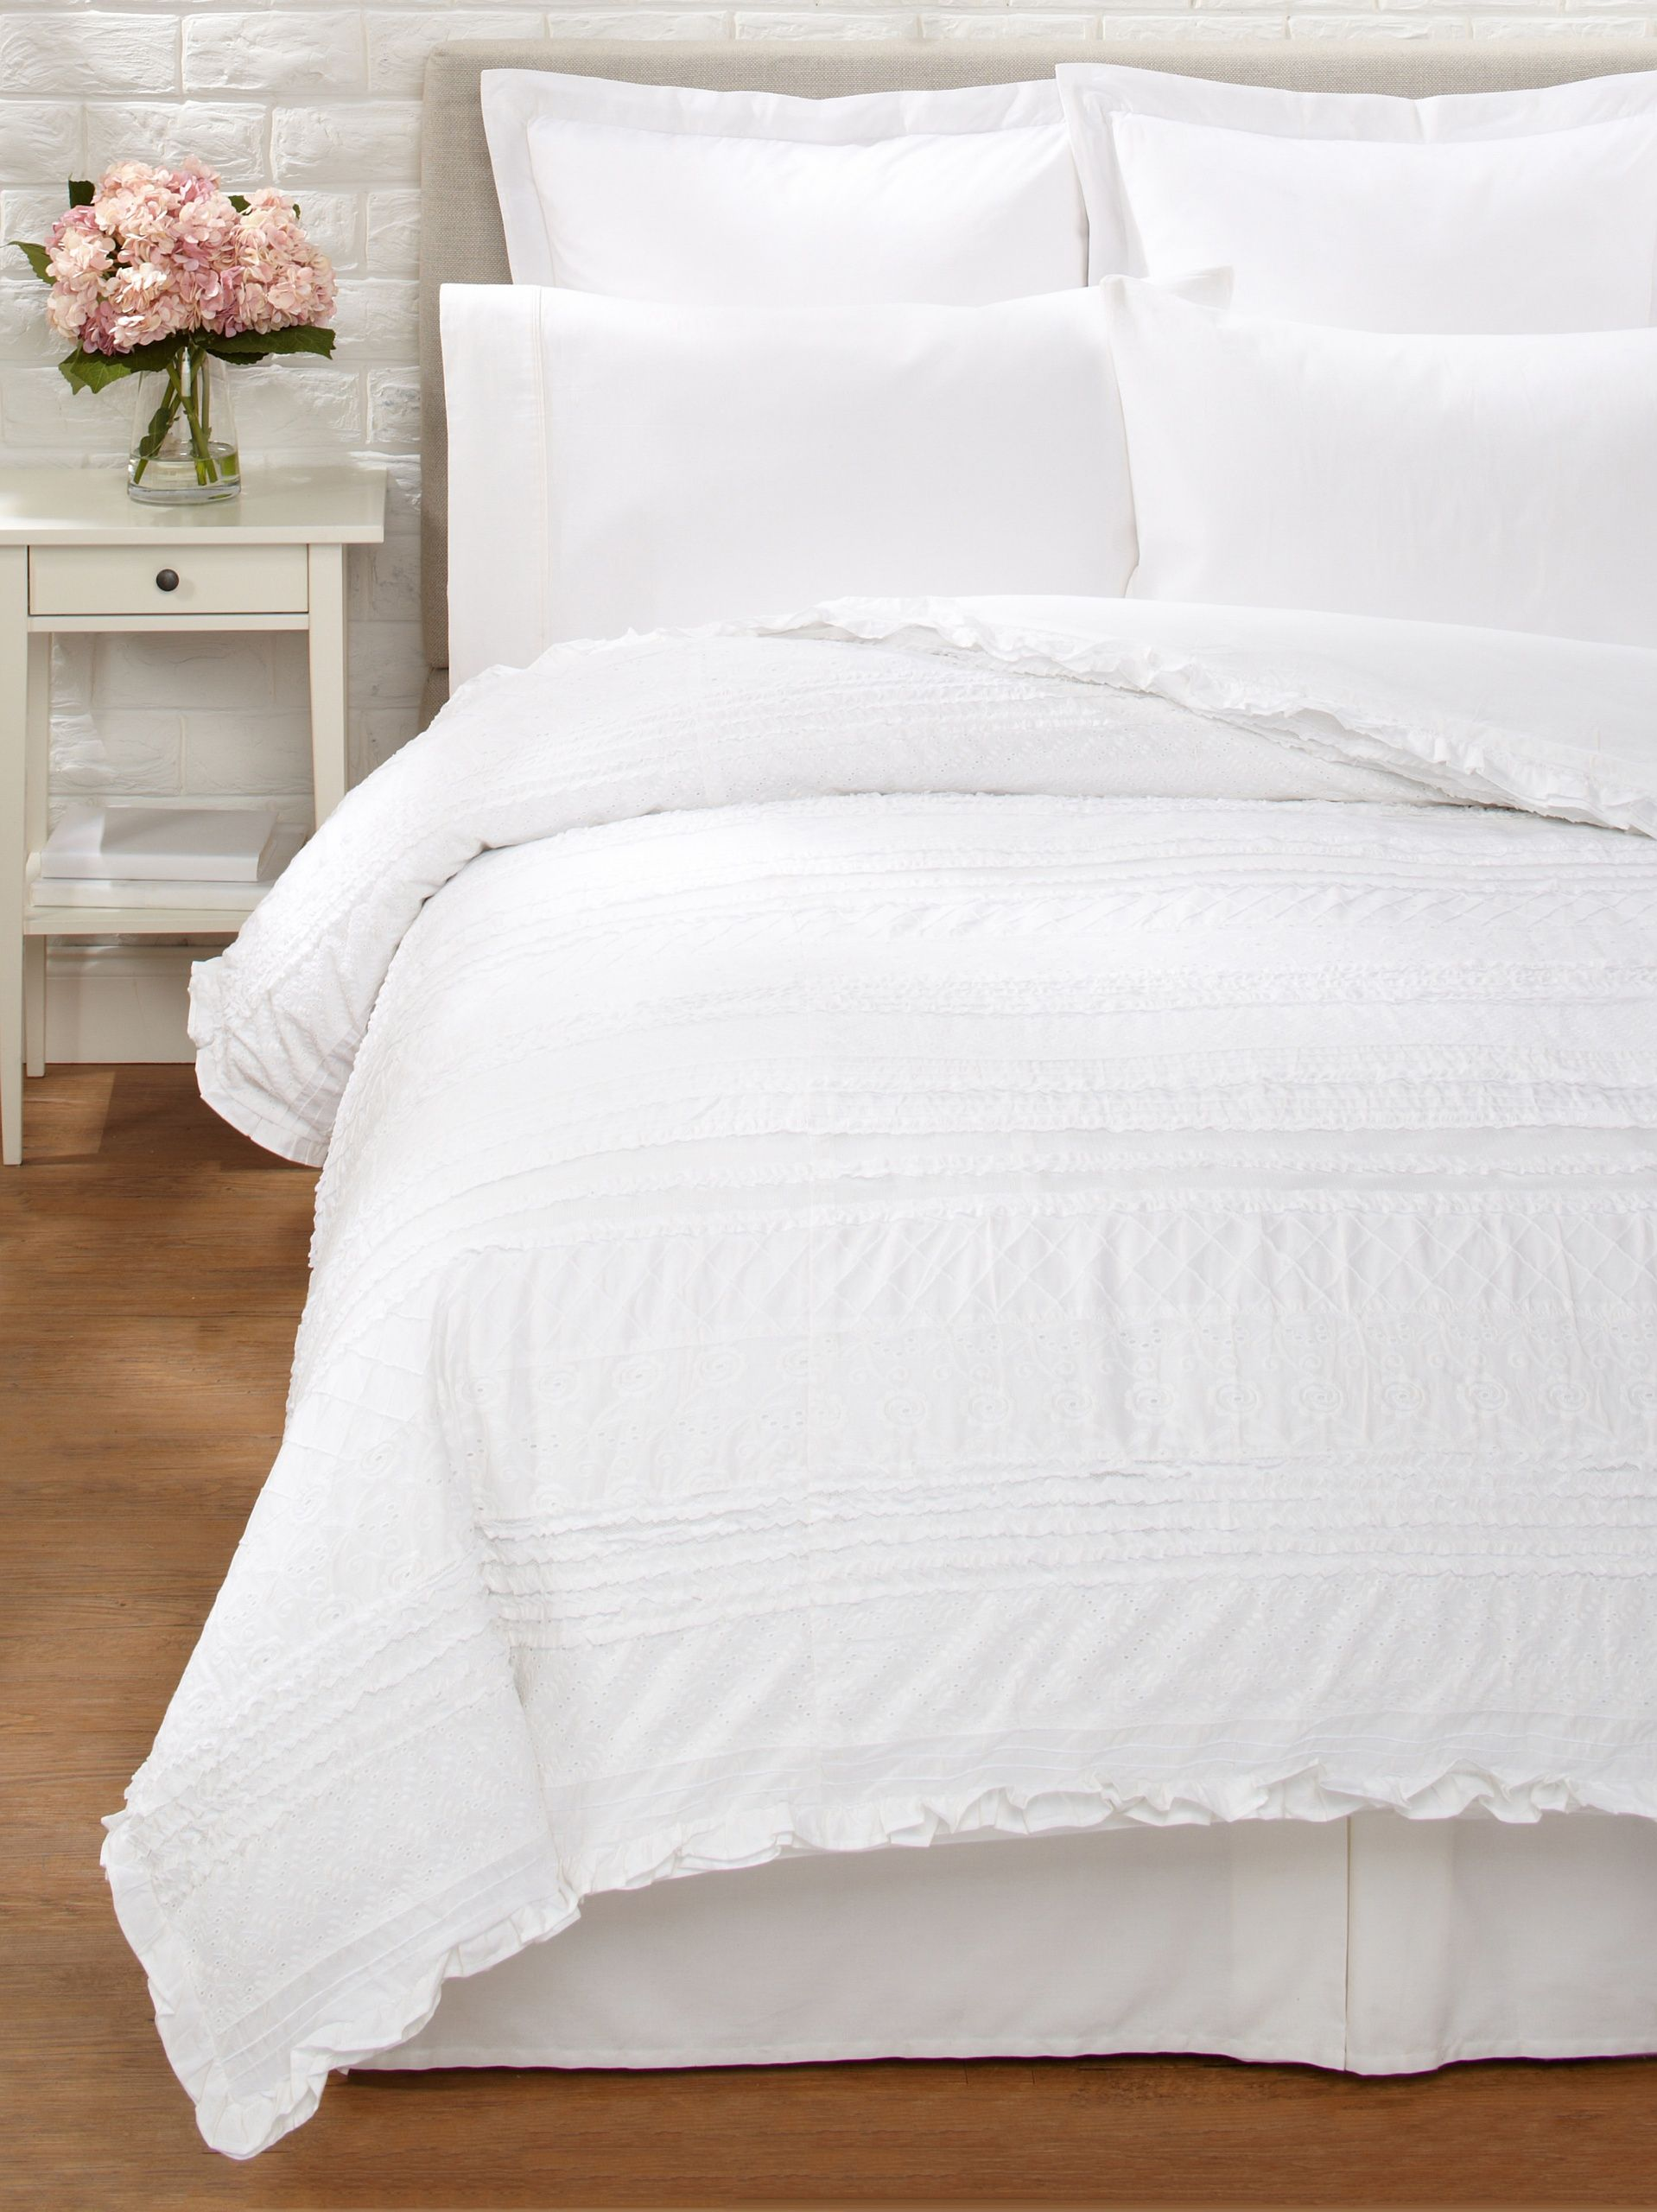 Amity Home Jenna Duvet Cover White Lightweight Cotton